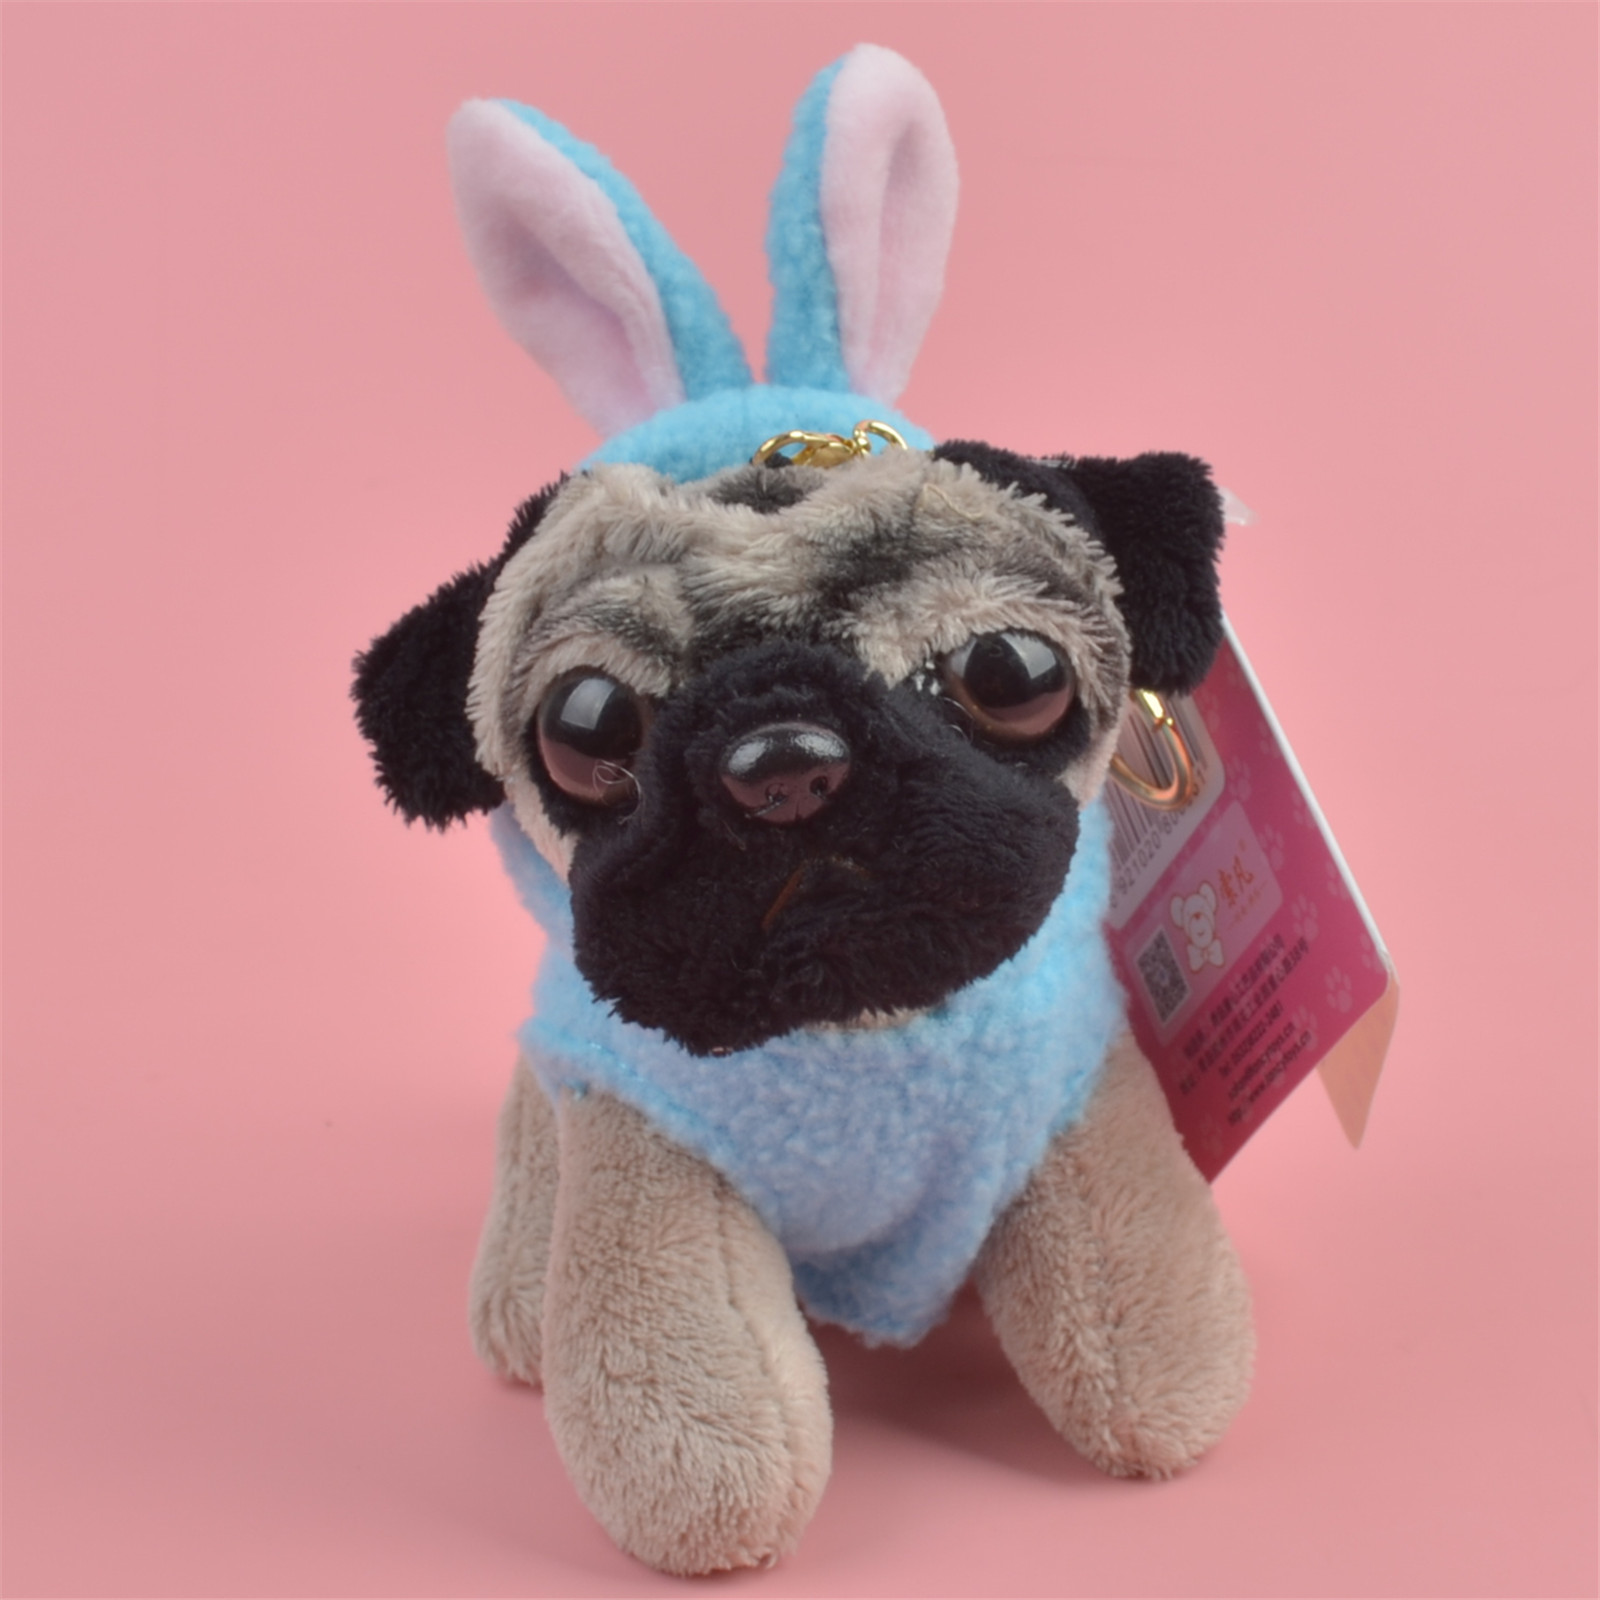 Blue Rabbit Cloth Pug Dog Animals stuffed Pendant Keyring Plush Toy, Puppy Backpack Decoration  Keychain / Keyholder Gift